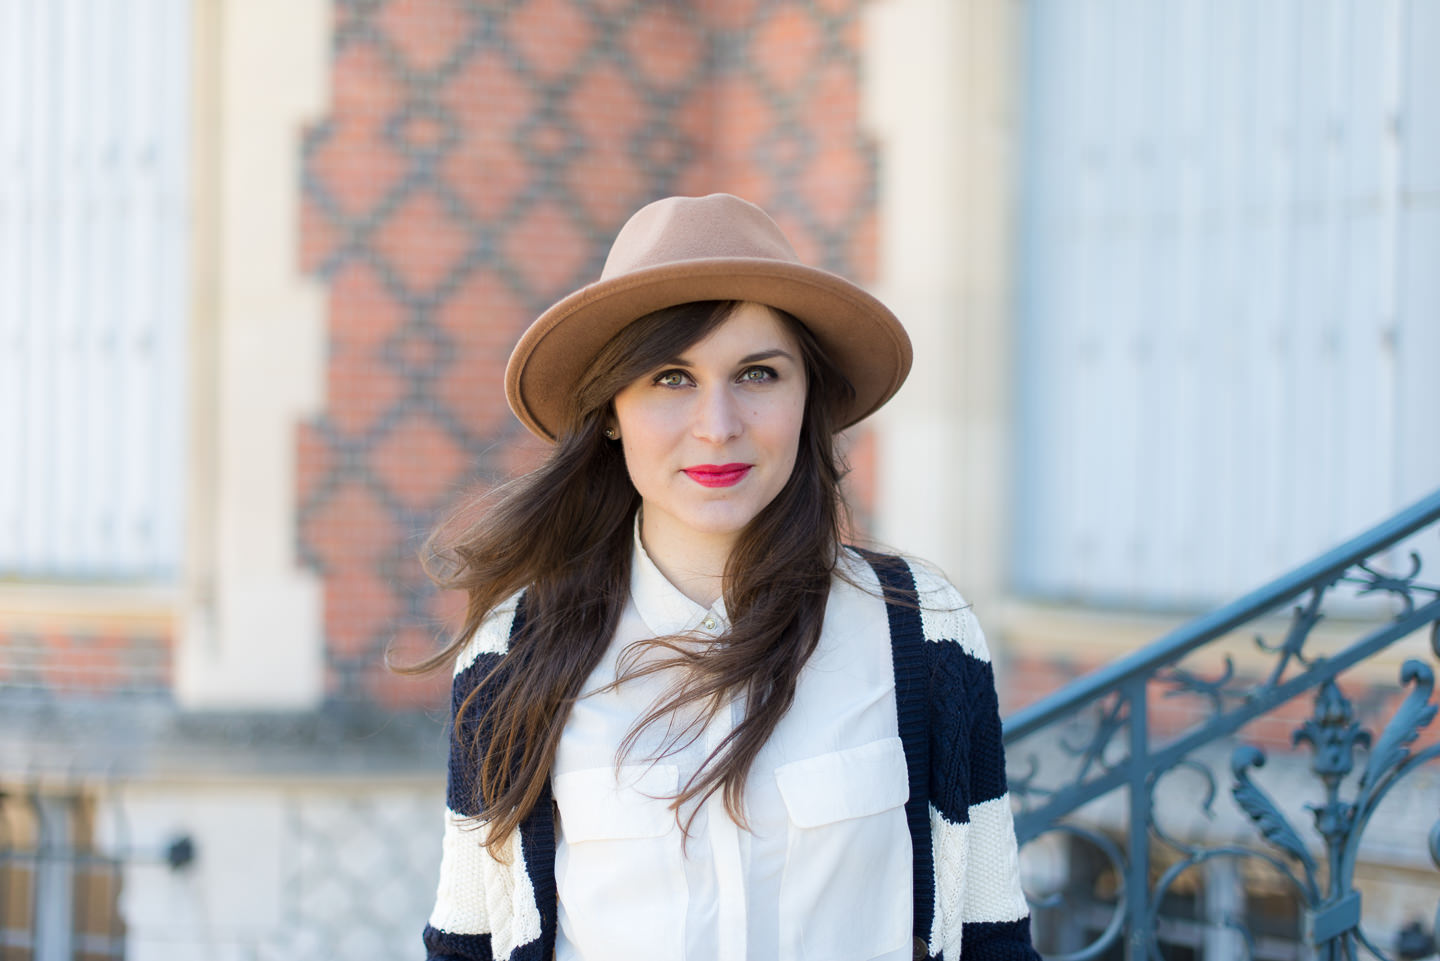 Mode and the city fashion beauty lifestyle blog in paris - Daphne mode and the city ...